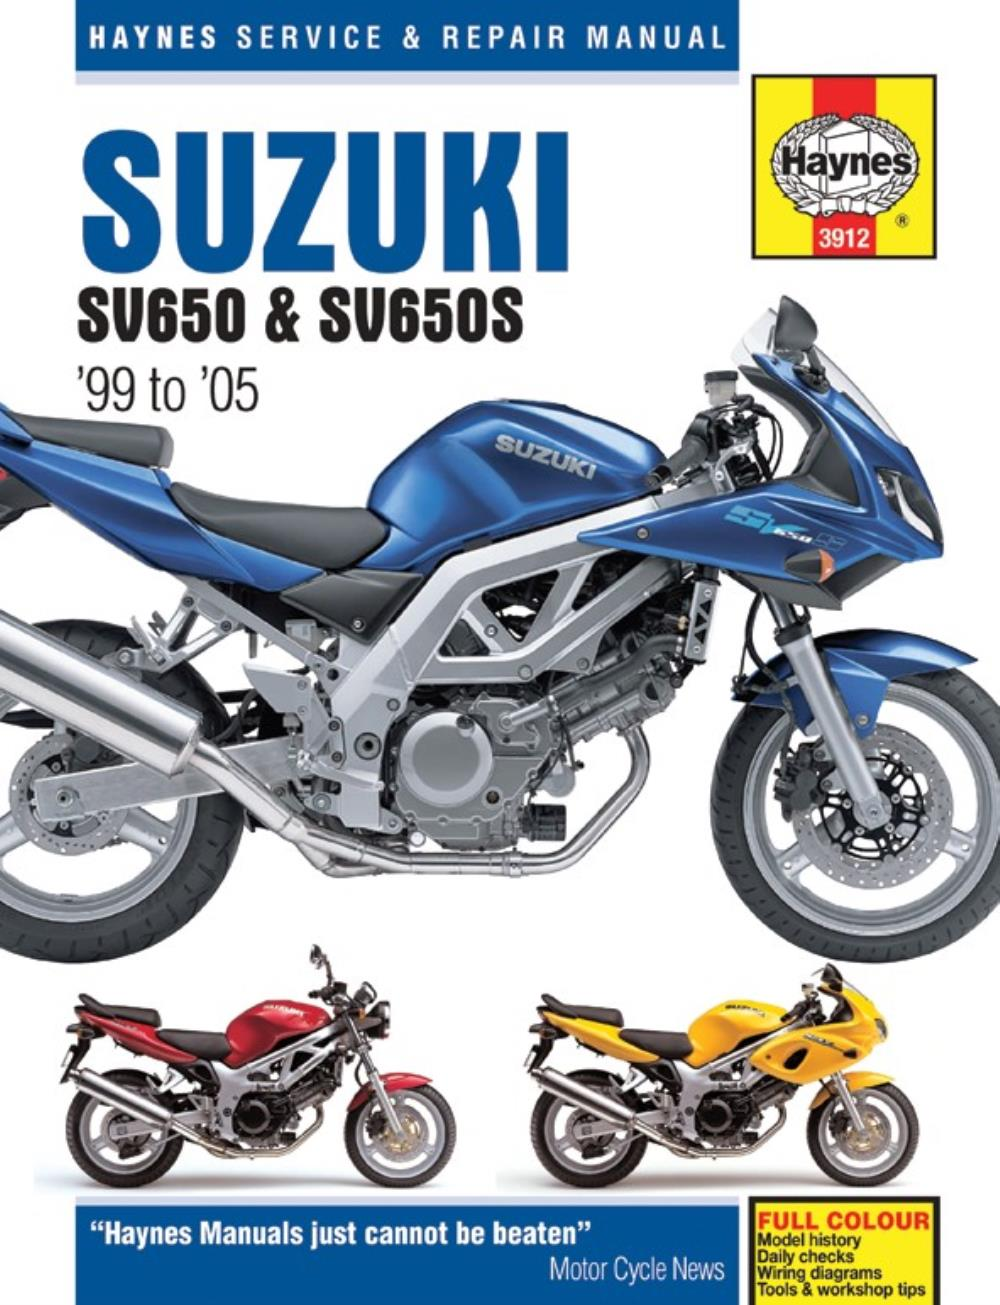 manual haynes for 2000 suzuki sv 650 y naked no abs ebay rh ebay co uk 2000 sv650 service manual 2000 sv650 service manual